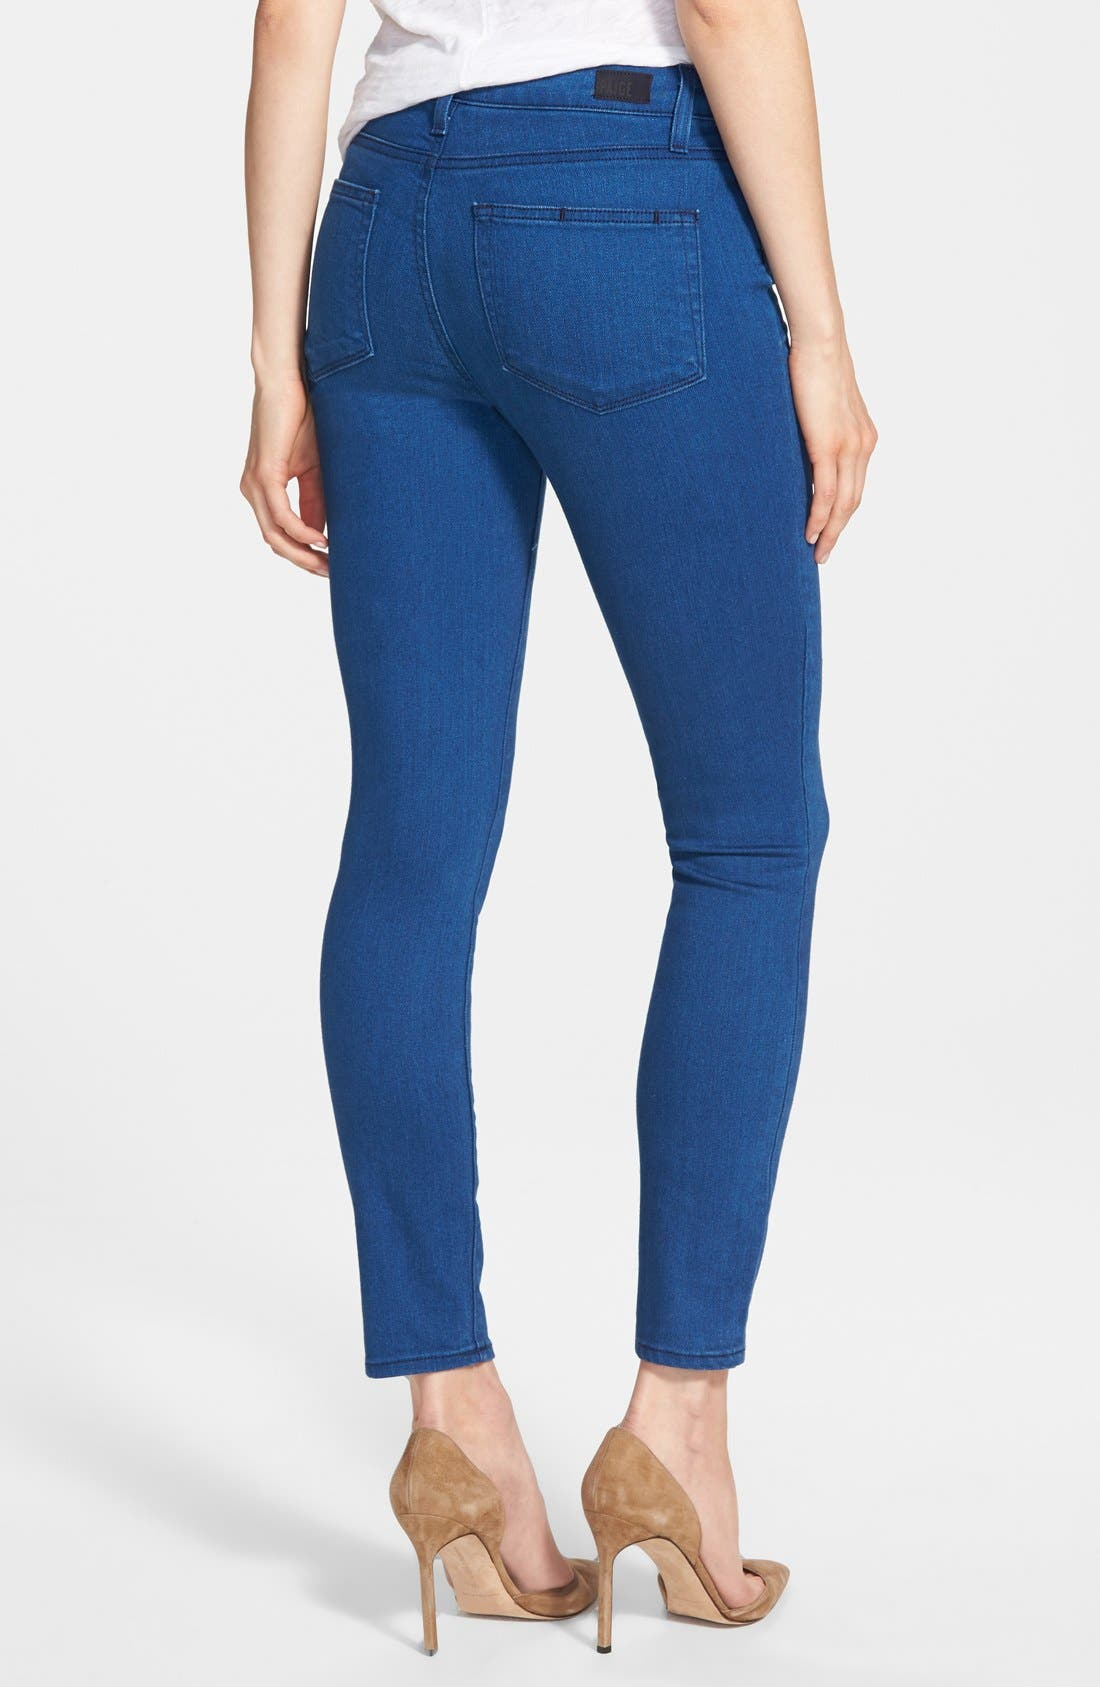 Alternate Image 2  - Paige Denim 'Hoxton' Ankle Skinny Jeans (Frenchie)